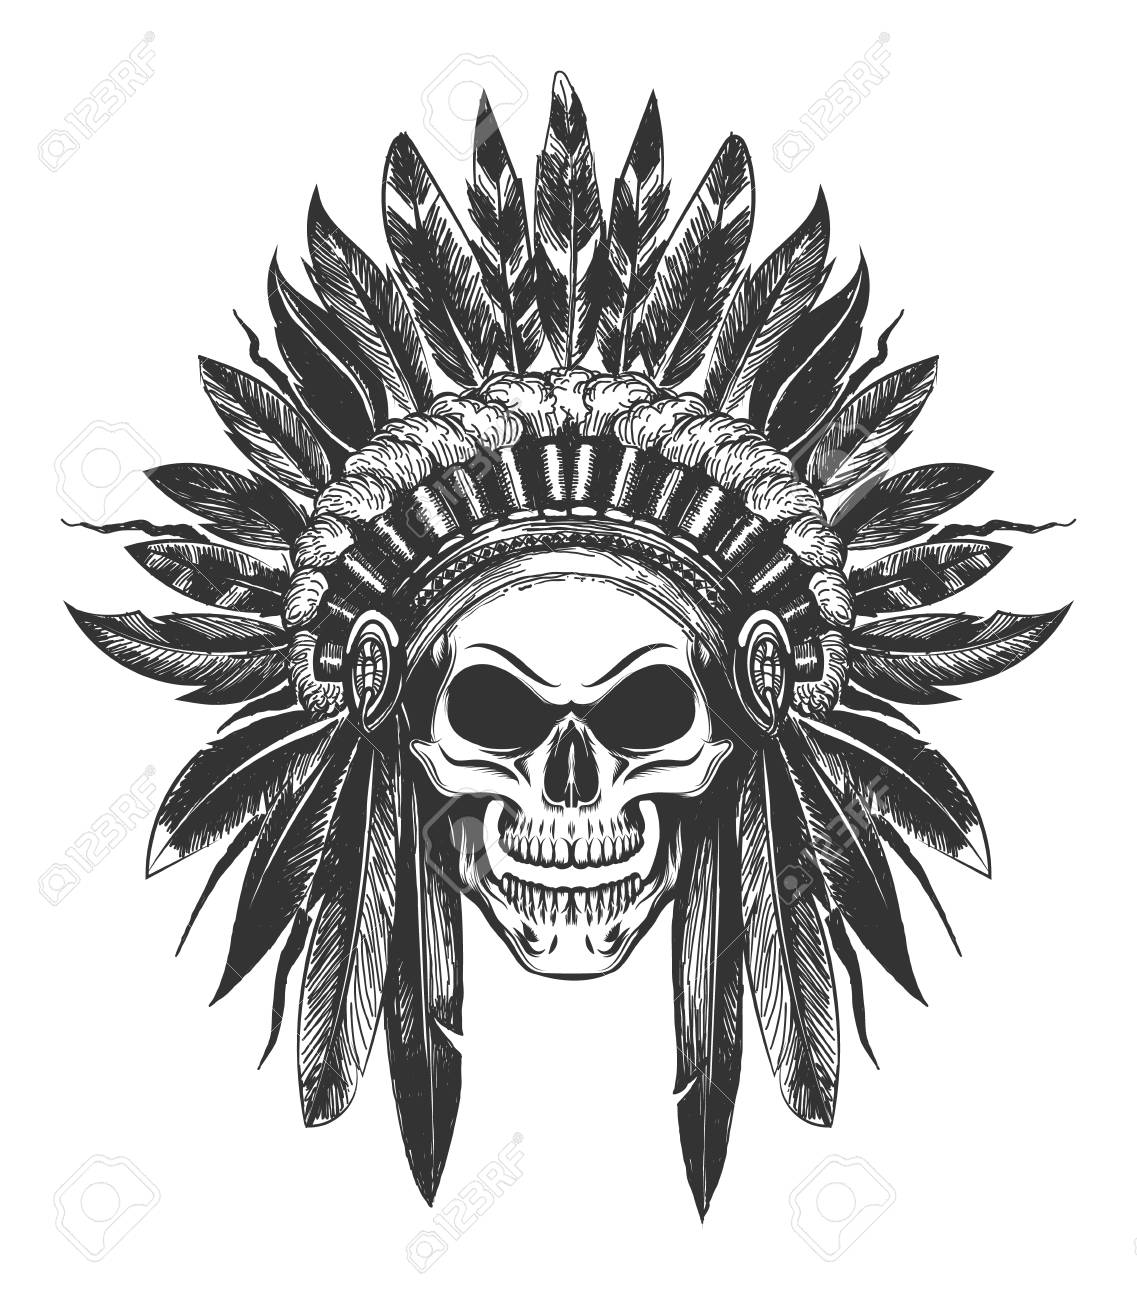 Human Skull in Native American Indian War Bonnet drawn in tattoo style. Vector illustration. - 94781726